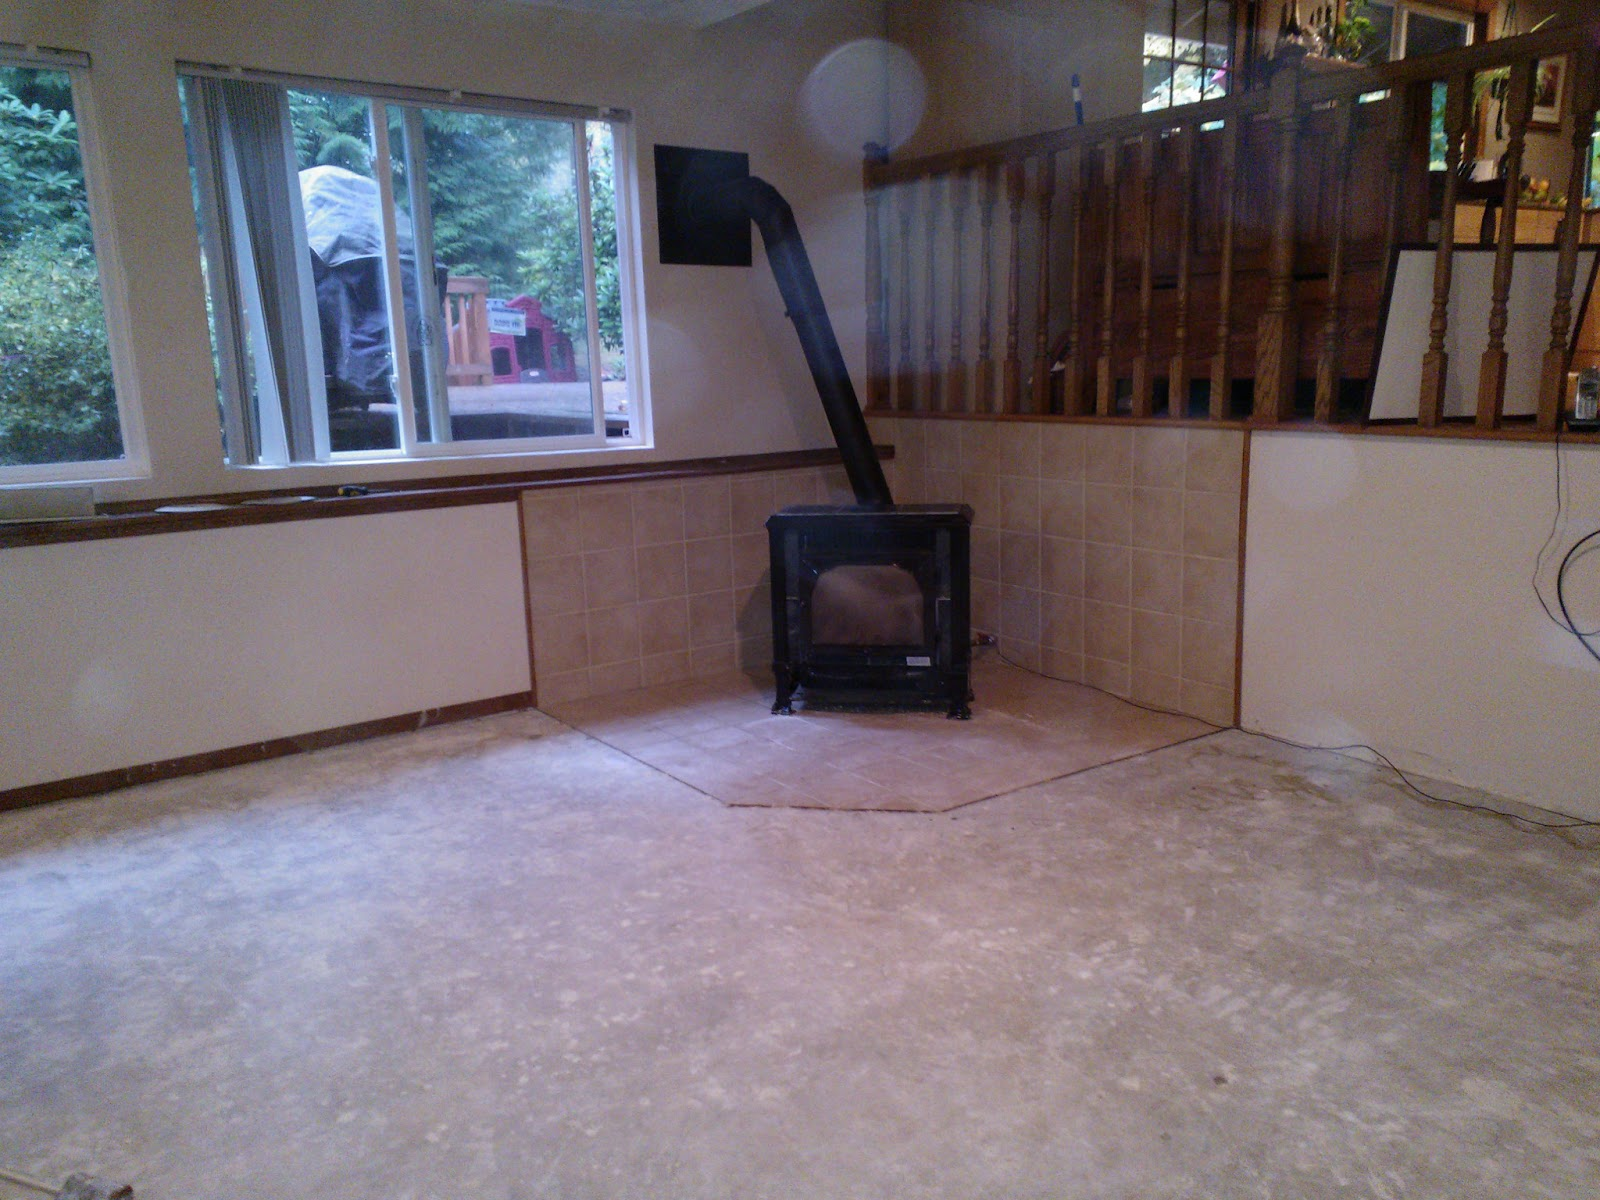 Angie 39 s suburban oasis and northwest cavegirls play room for Northwest flooring